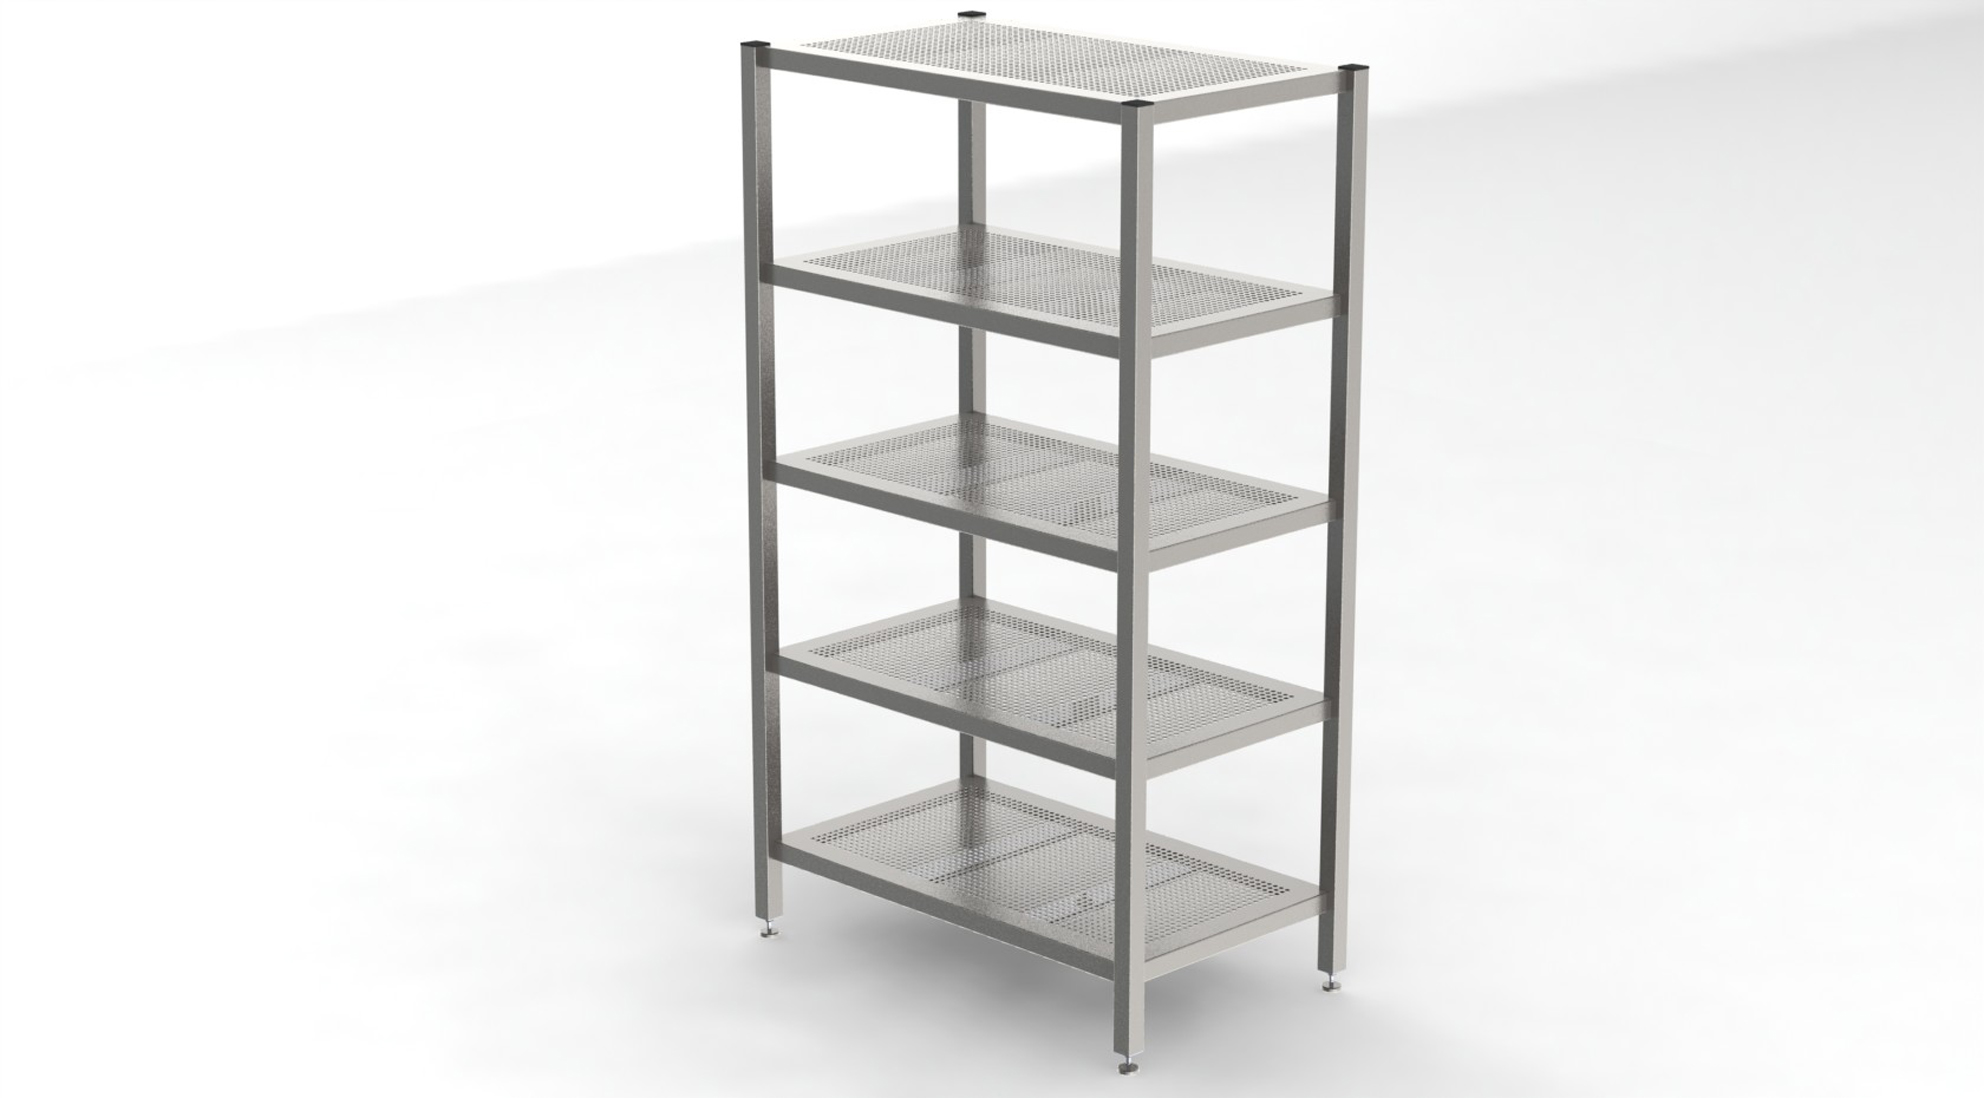 Cleanroom Rack With 5 Perforated Shelves -1199